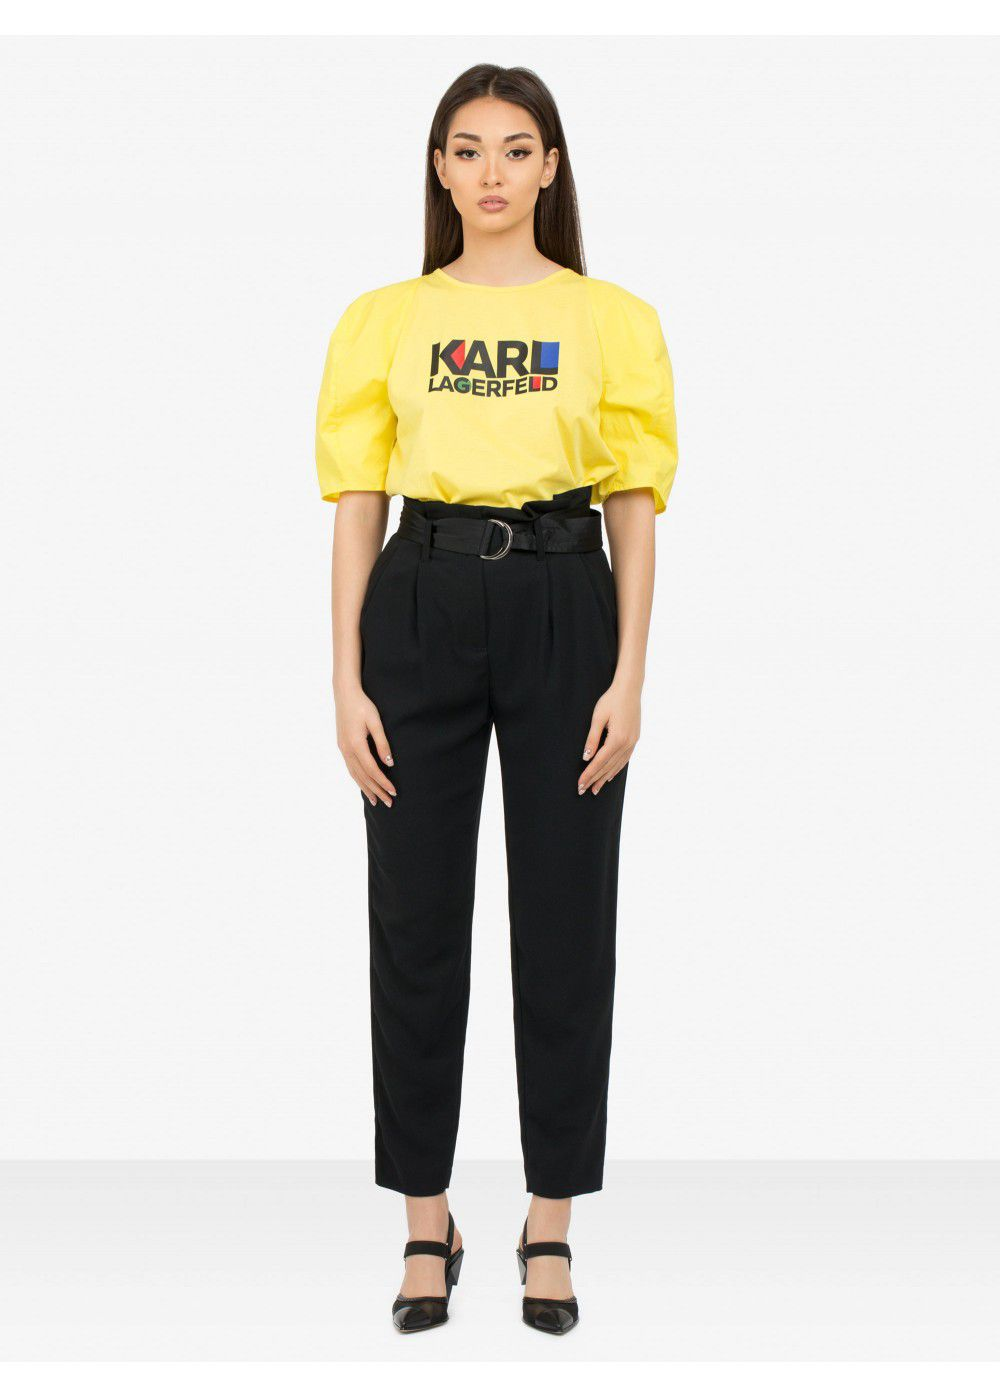 Karl Lagerfeld Casual High-Waist Trousers